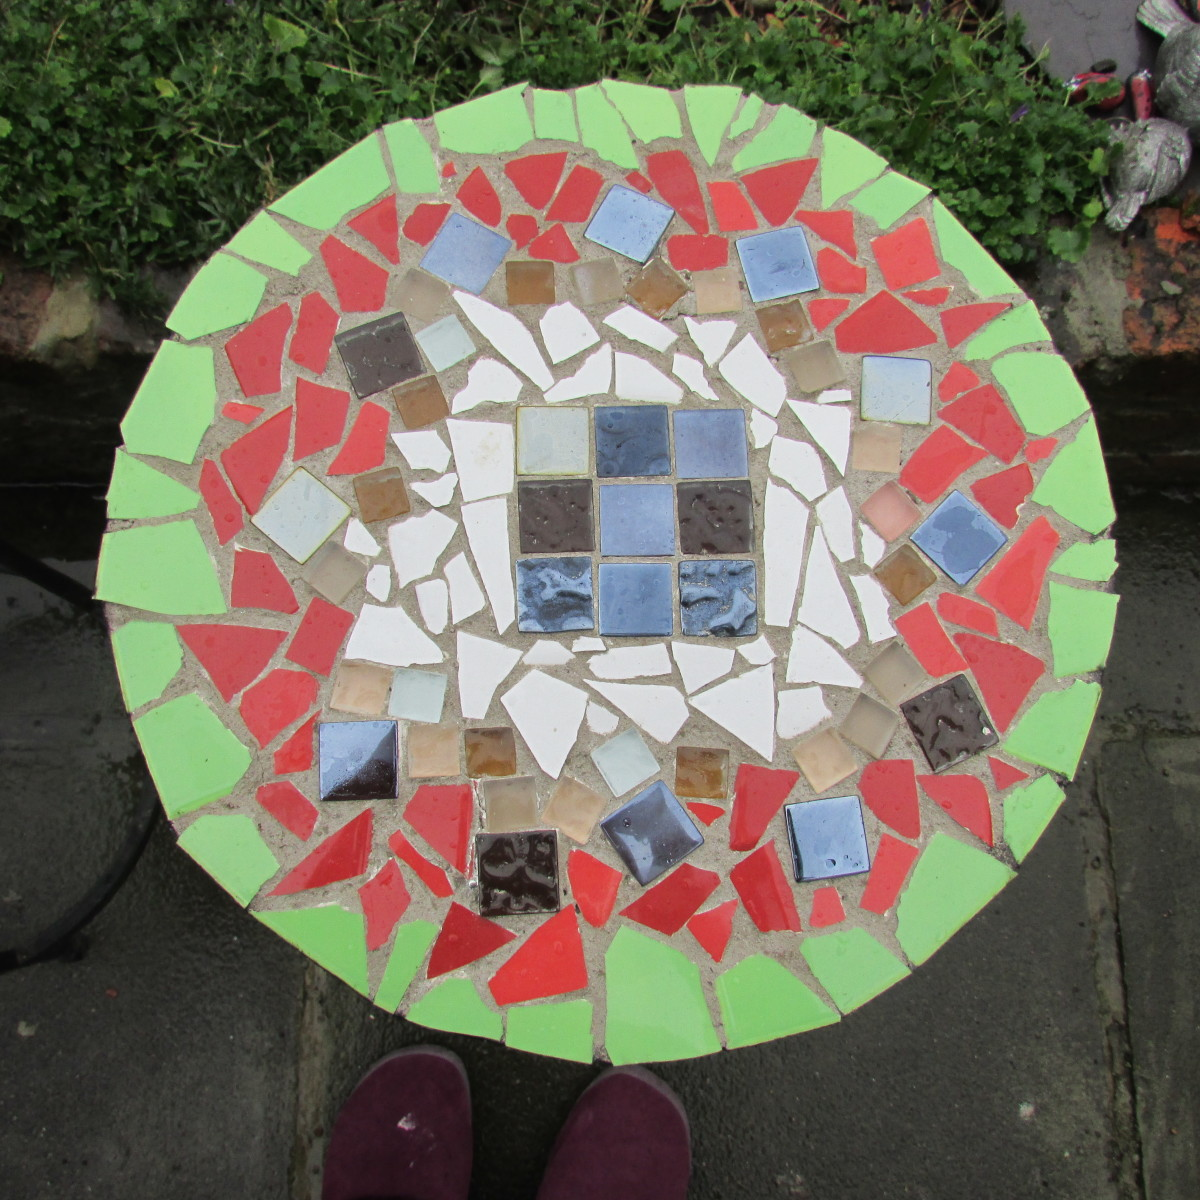 This table is made with my own ceramic tile and turned into a great mosaic design